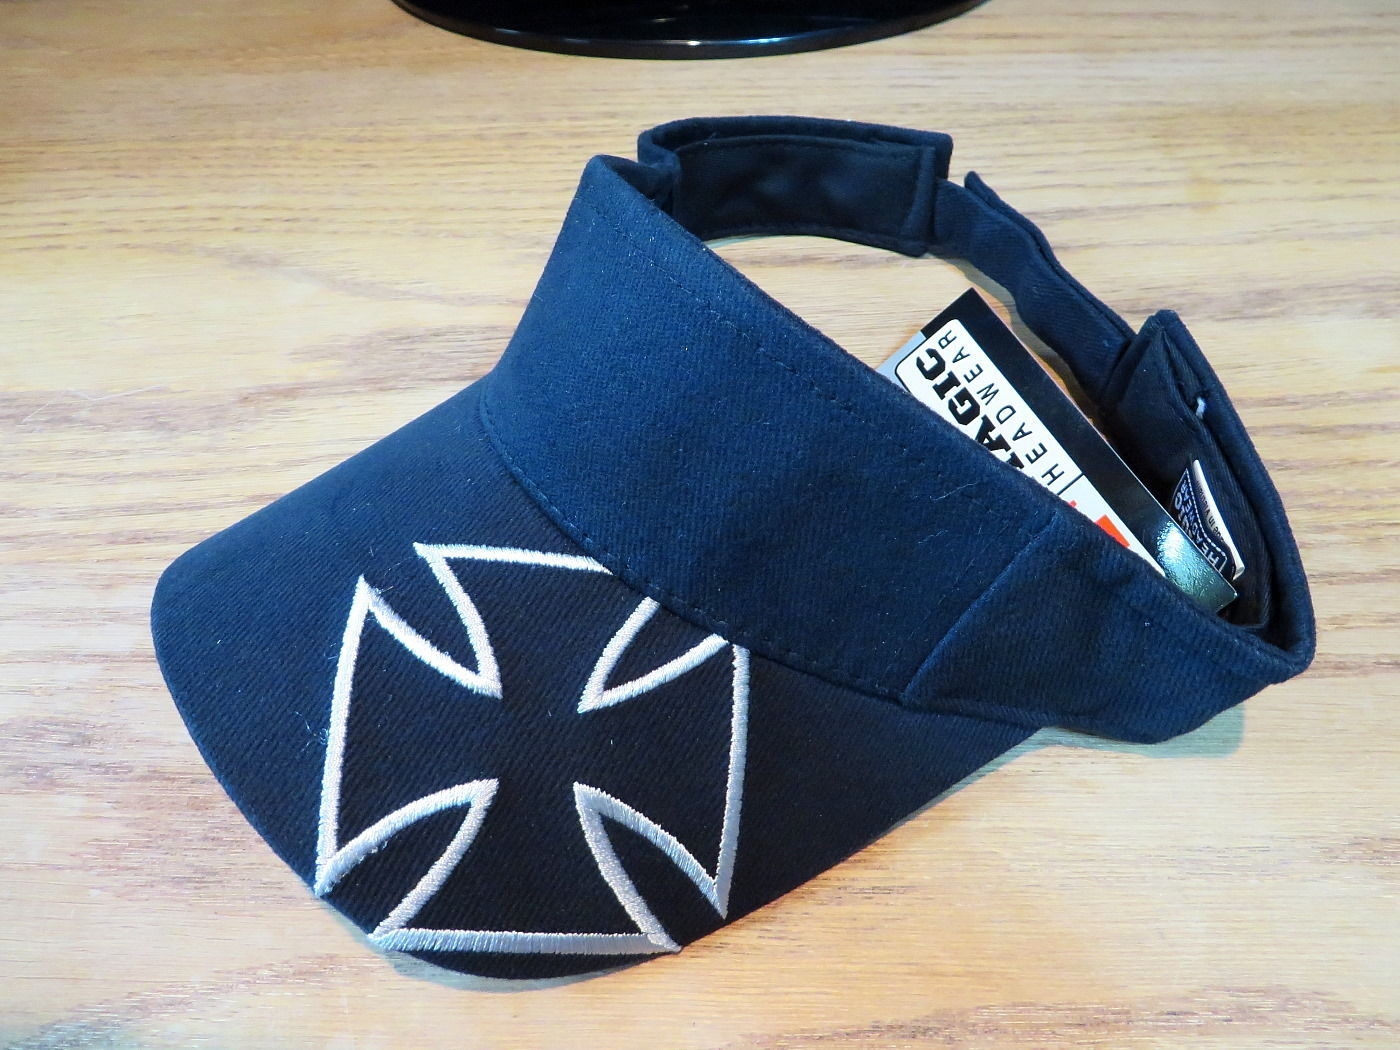 Magic Headwear Visor Hat Chopper Design Black